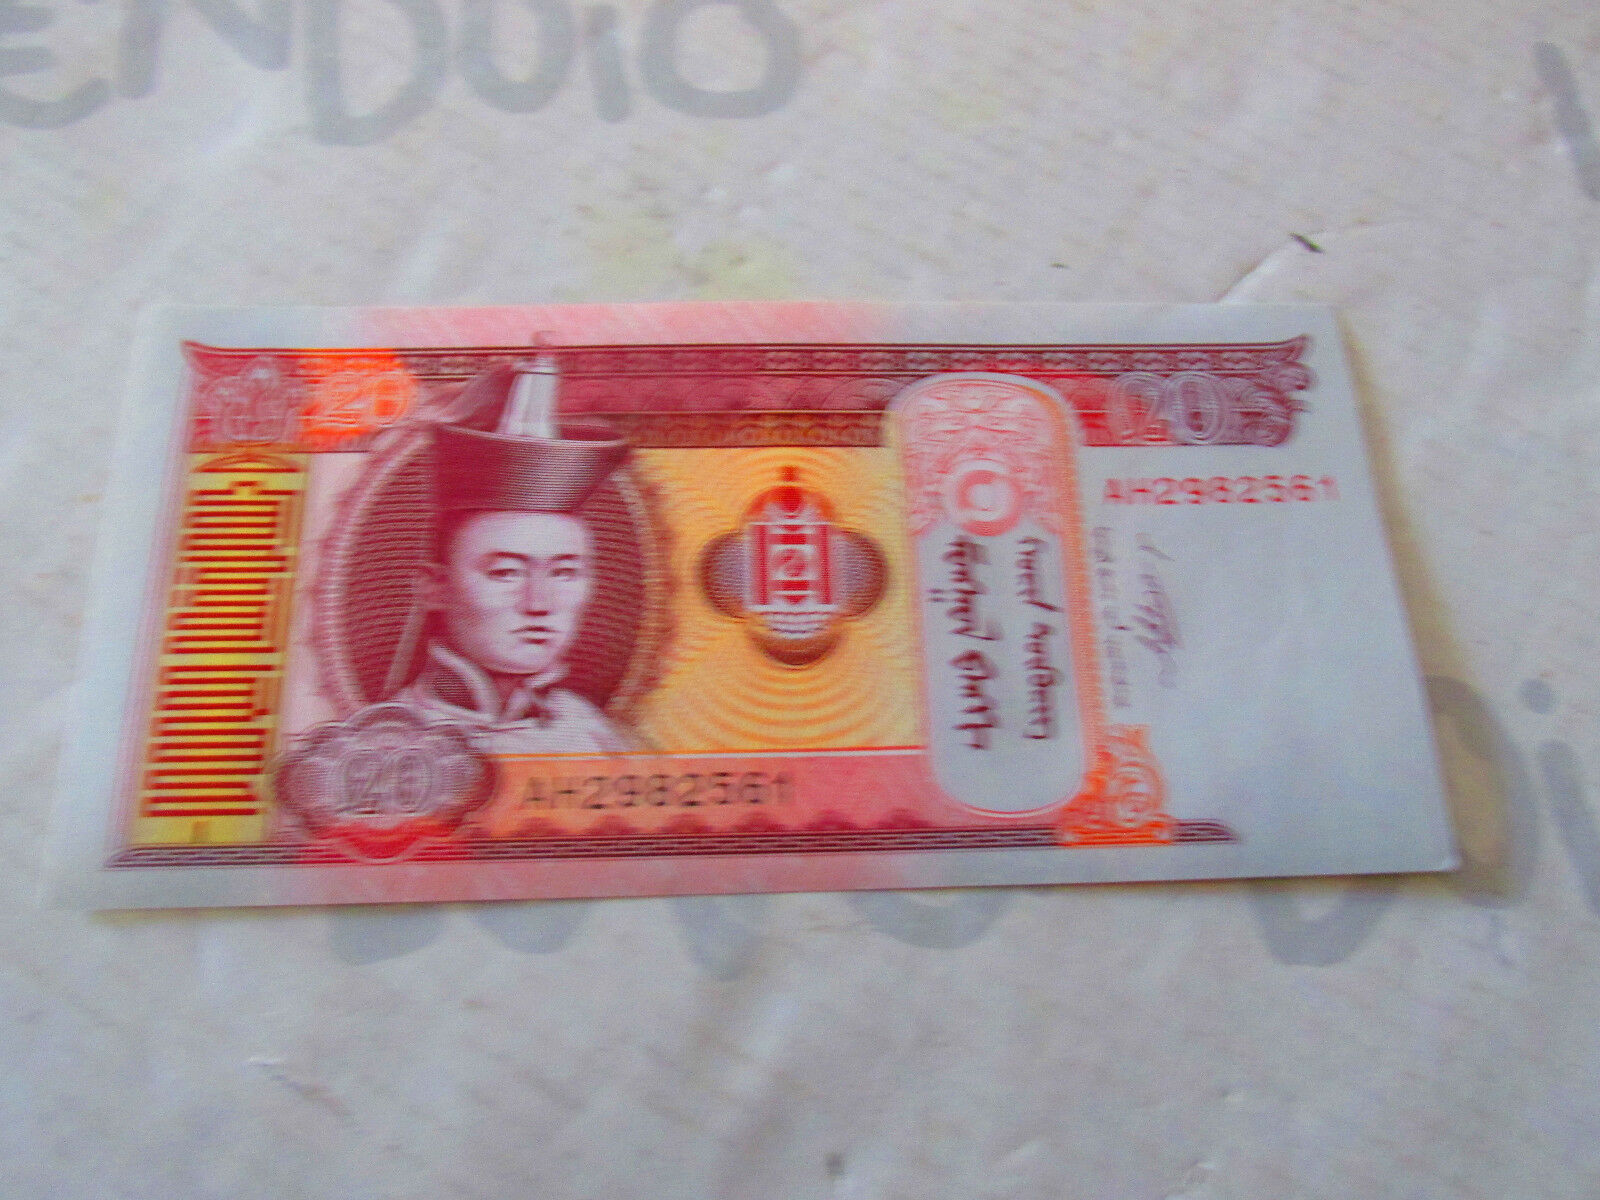 Banknote Mongolia from 20 Tugrik 2011 Fds Perfect